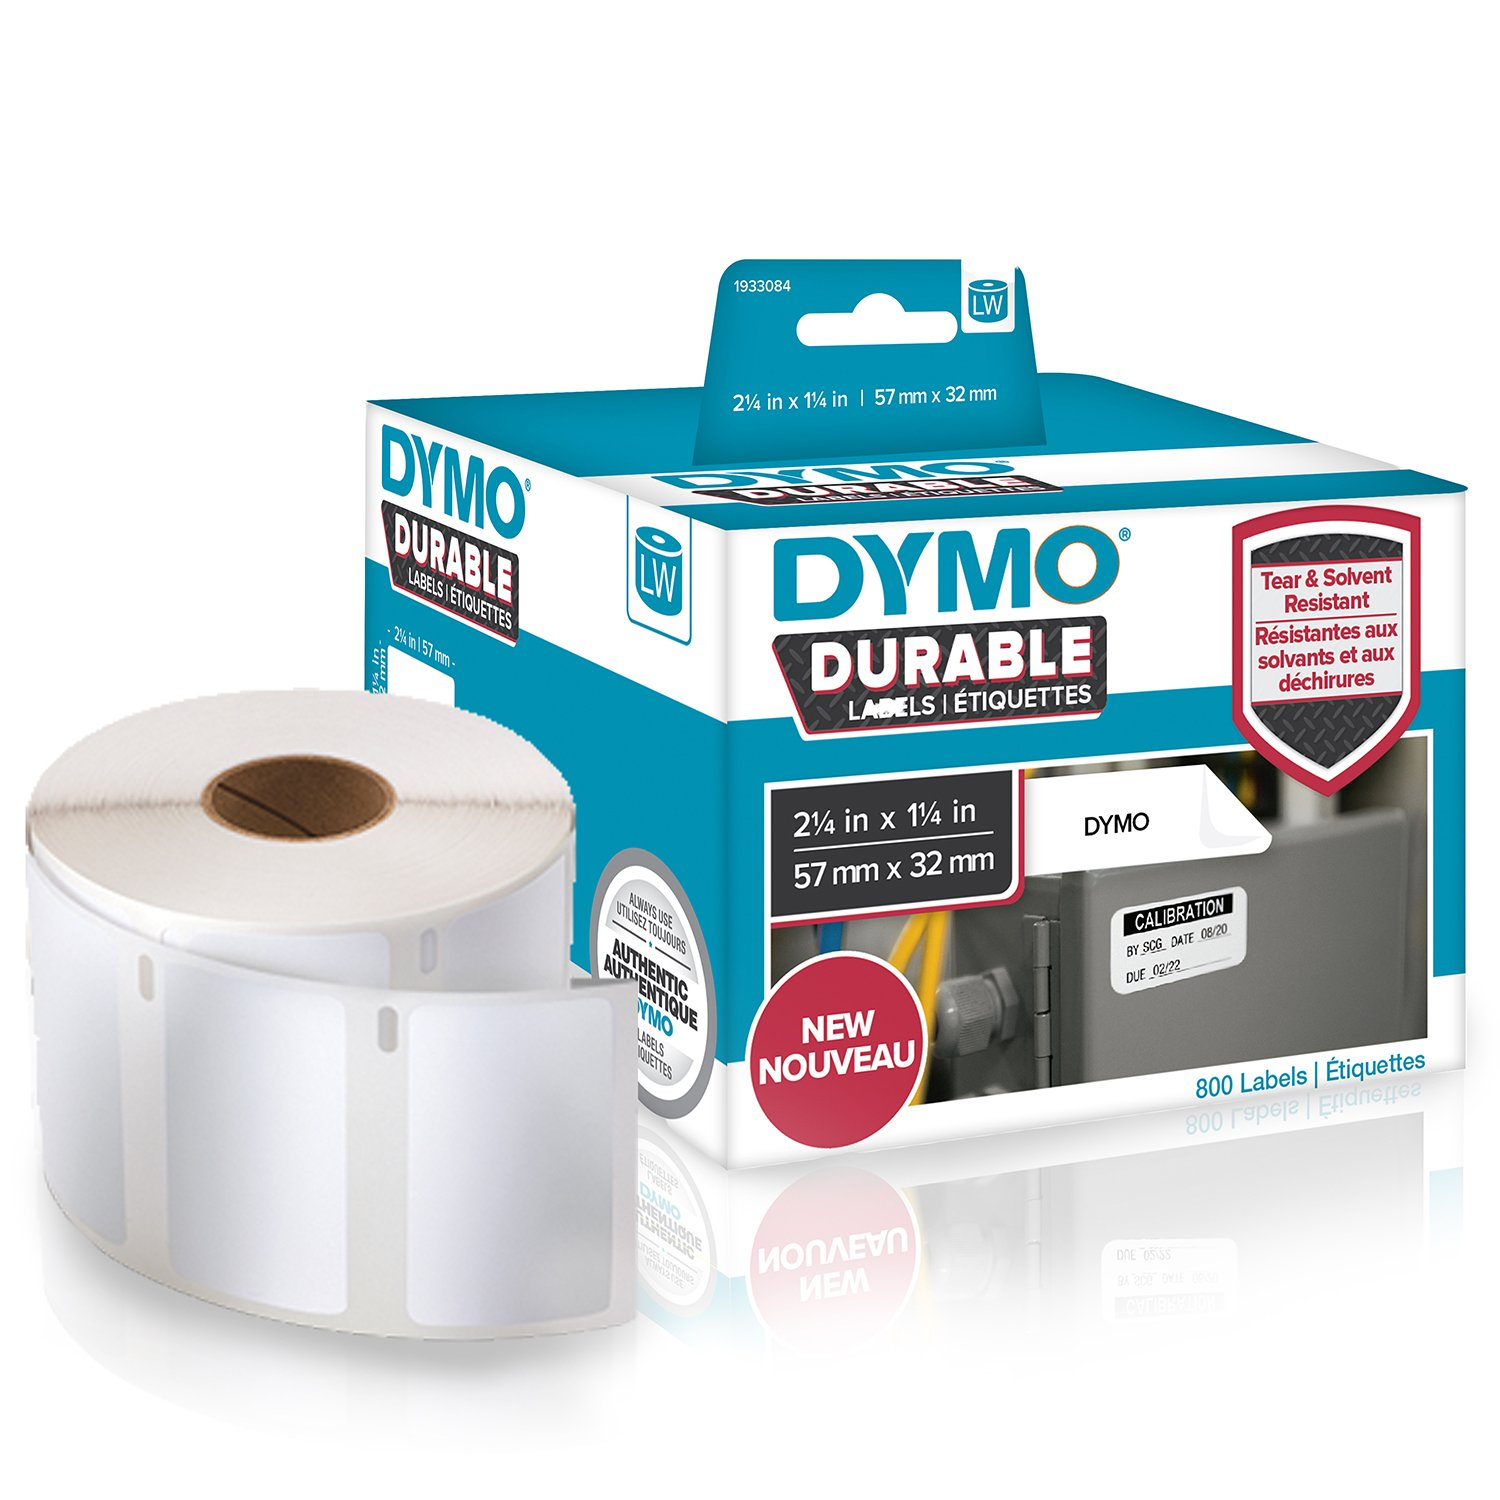 "DYMO LW Durable Industrial Labels for LabelWriter Label Printers, White Poly, 2-1/4"" x 1-1/4"", Roll of 800 (1933084)"